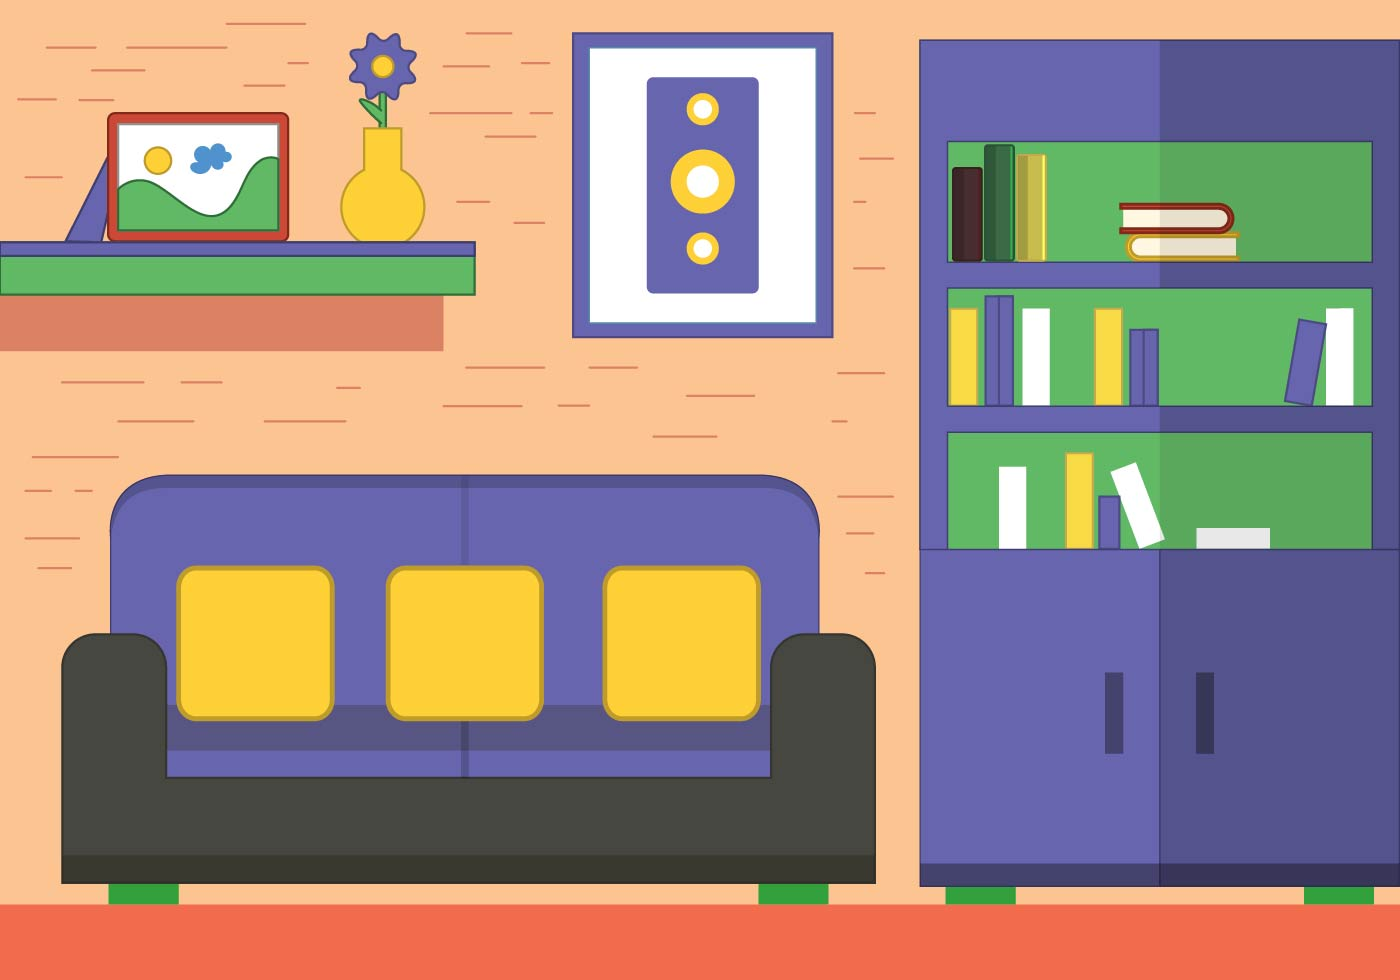 Free vector room design download free vector art stock for Room design vector